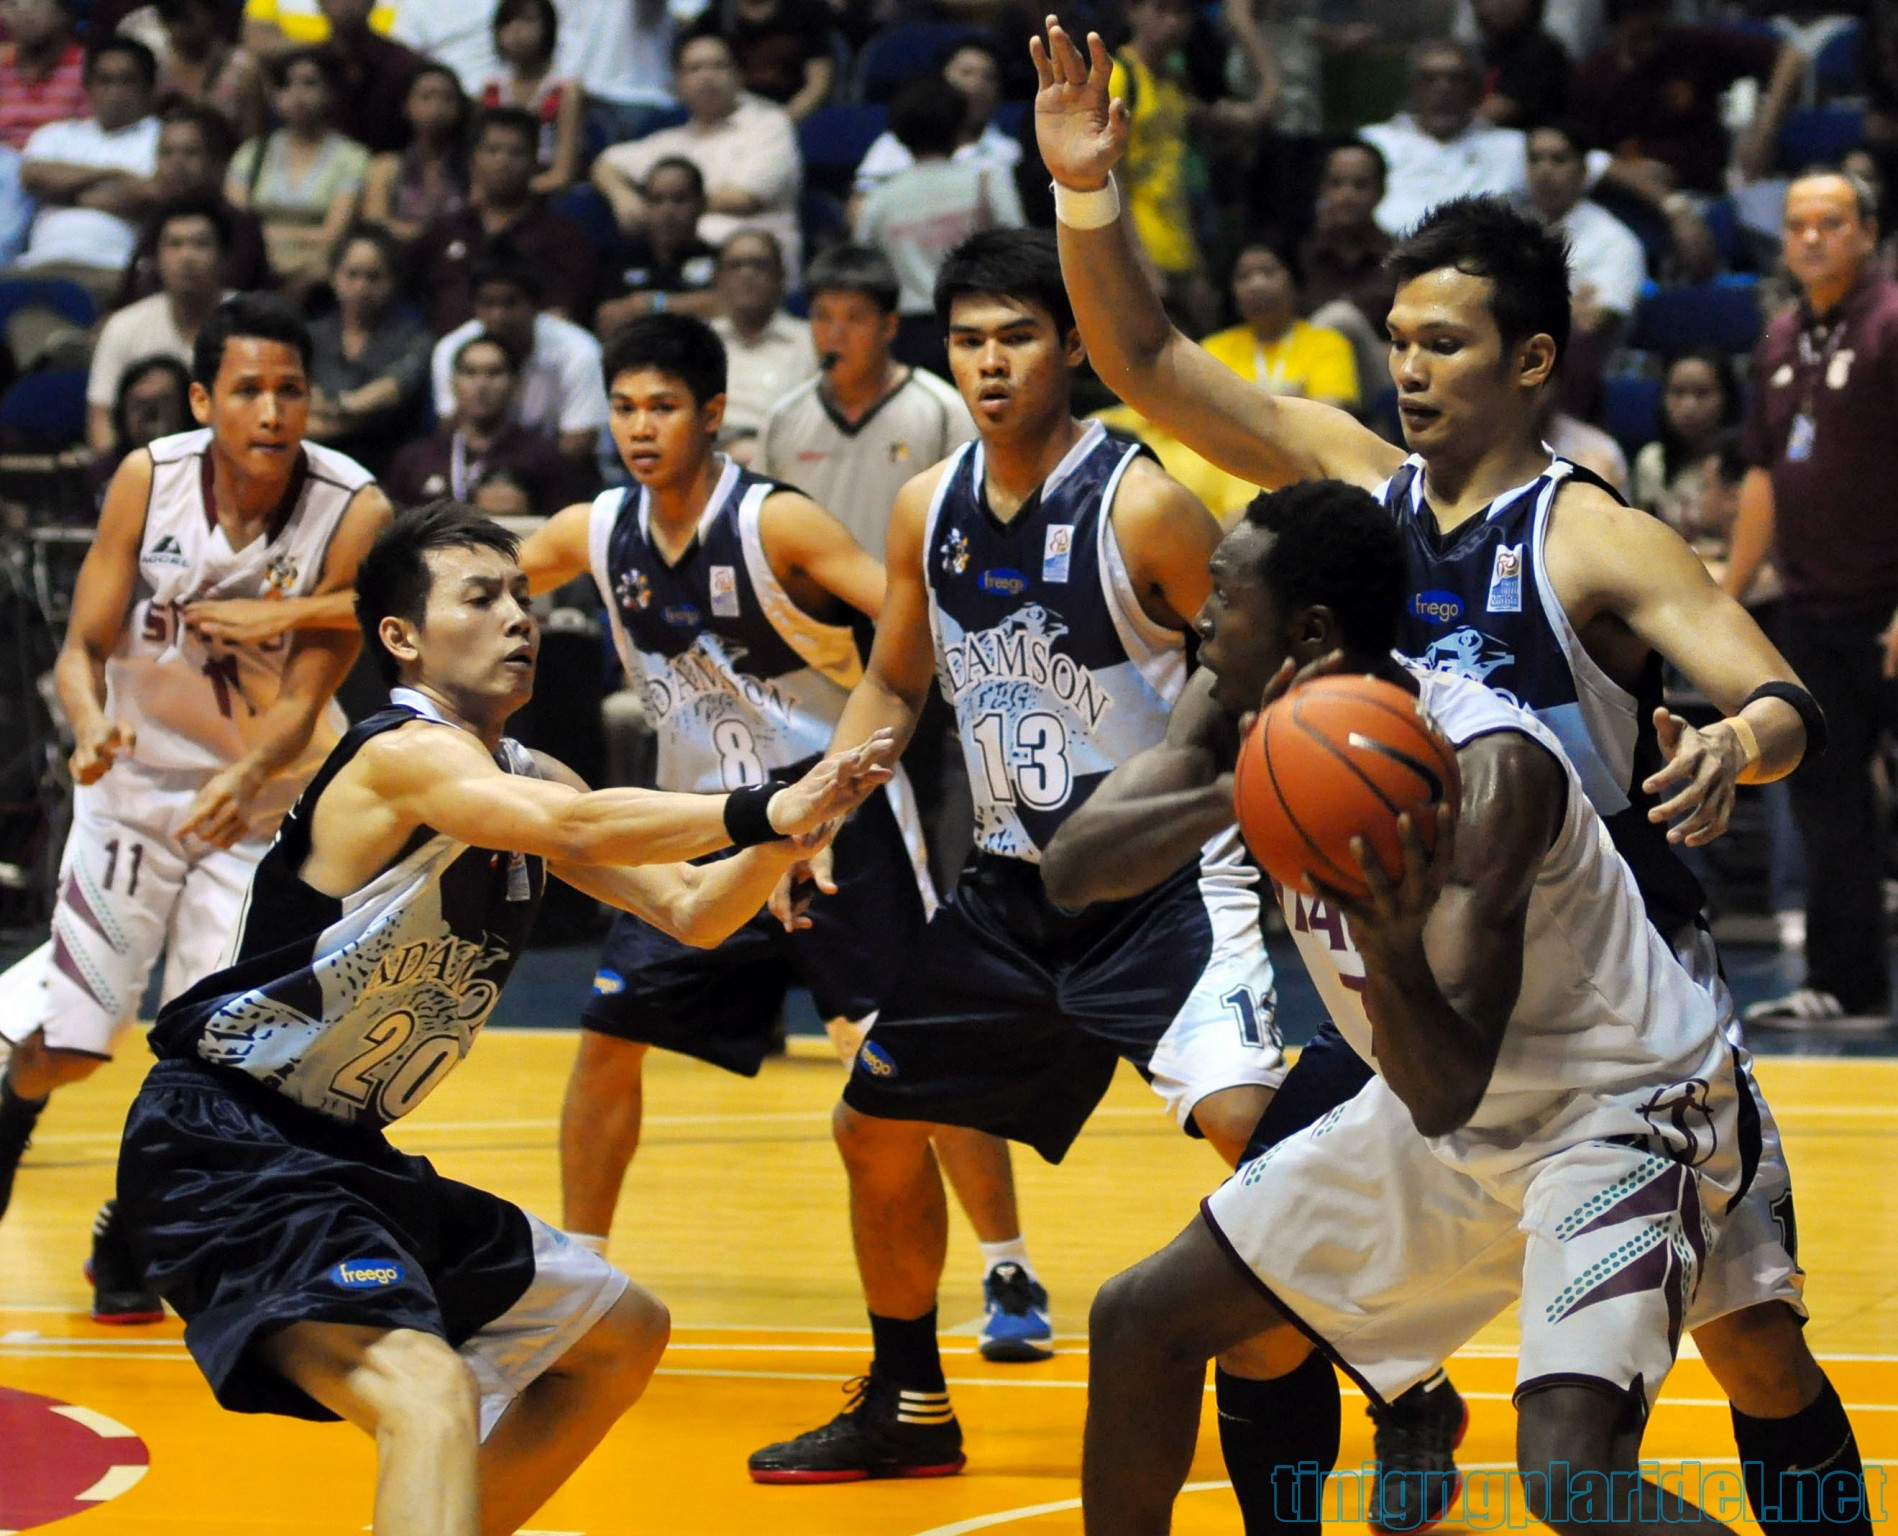 Lackluster Maroons surrender to Falcons